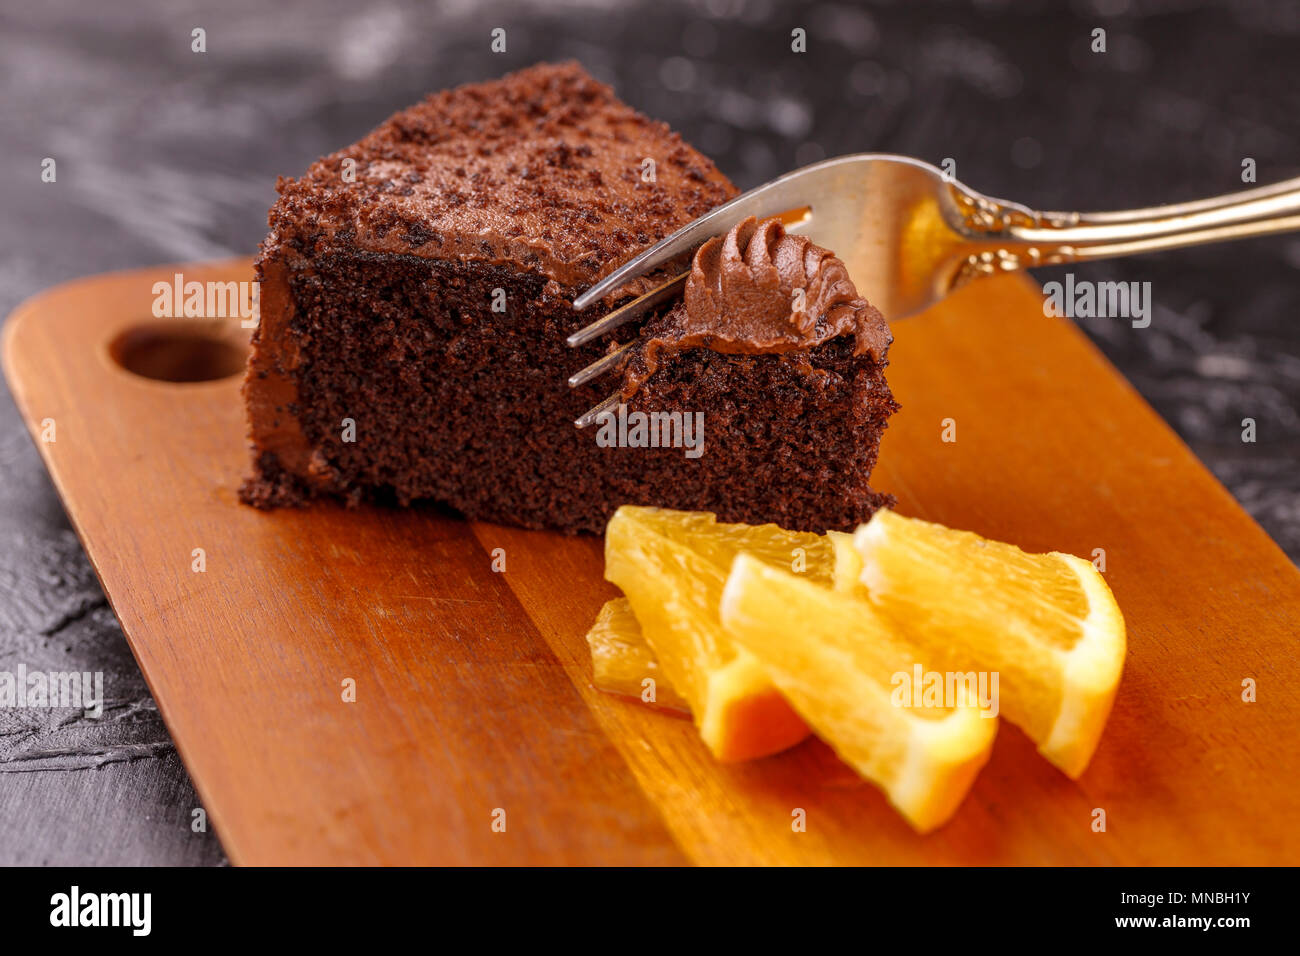 A close up image of cutting into a piece of rich chocolate cake garnished with orange slices. - Stock Image